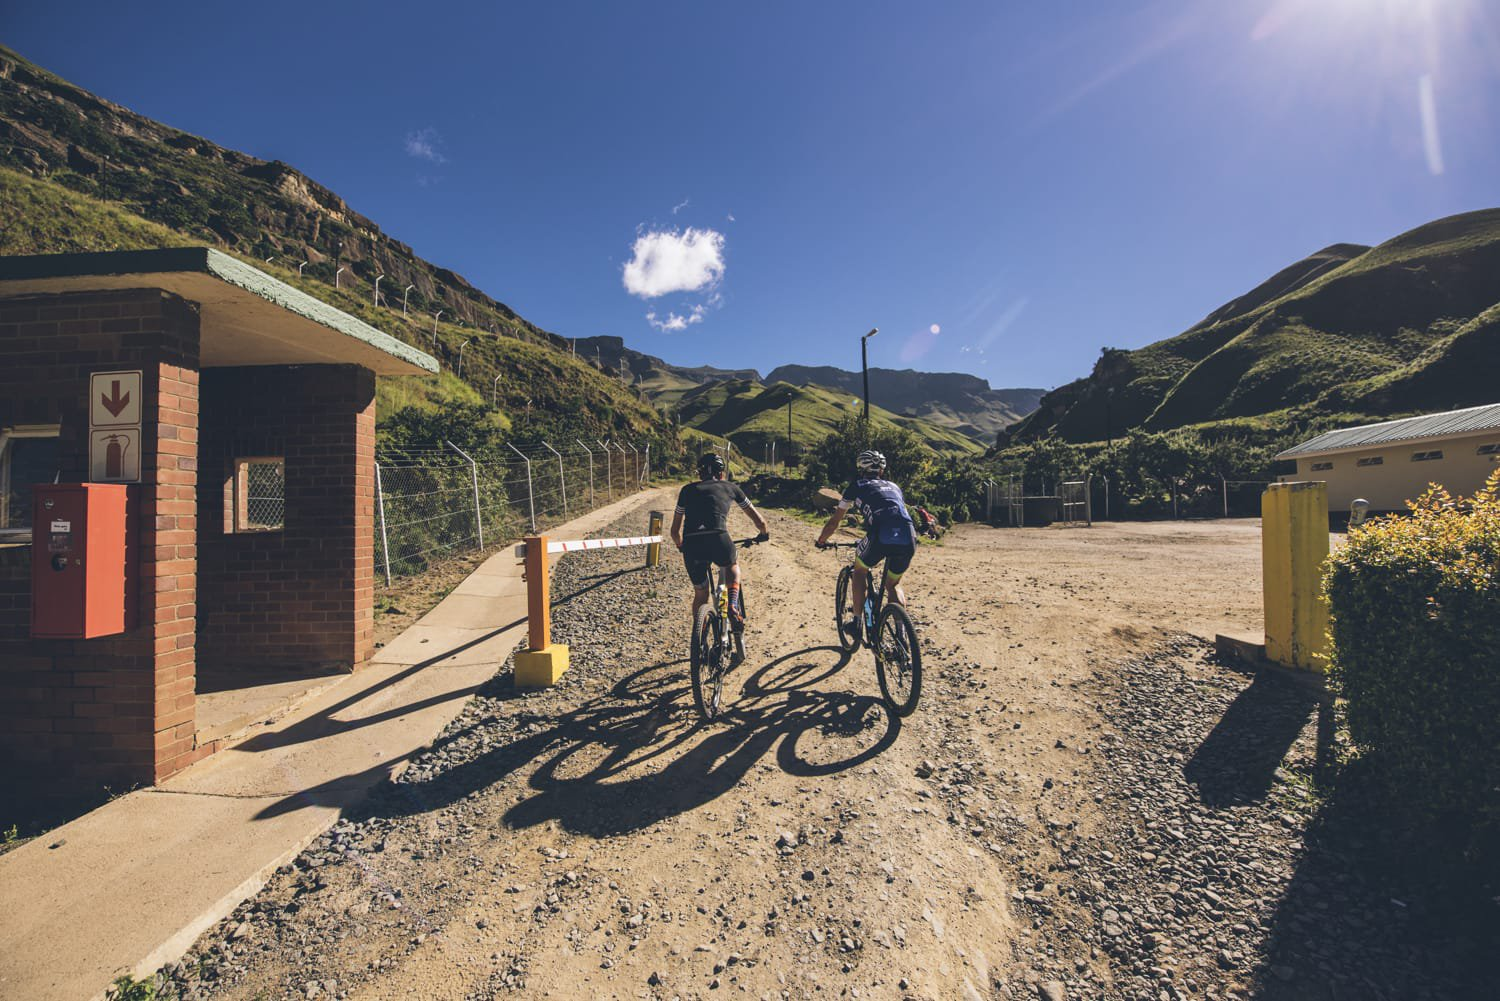 sani-pass-desmond-louw-bicycling-magazine-wowrides-0040